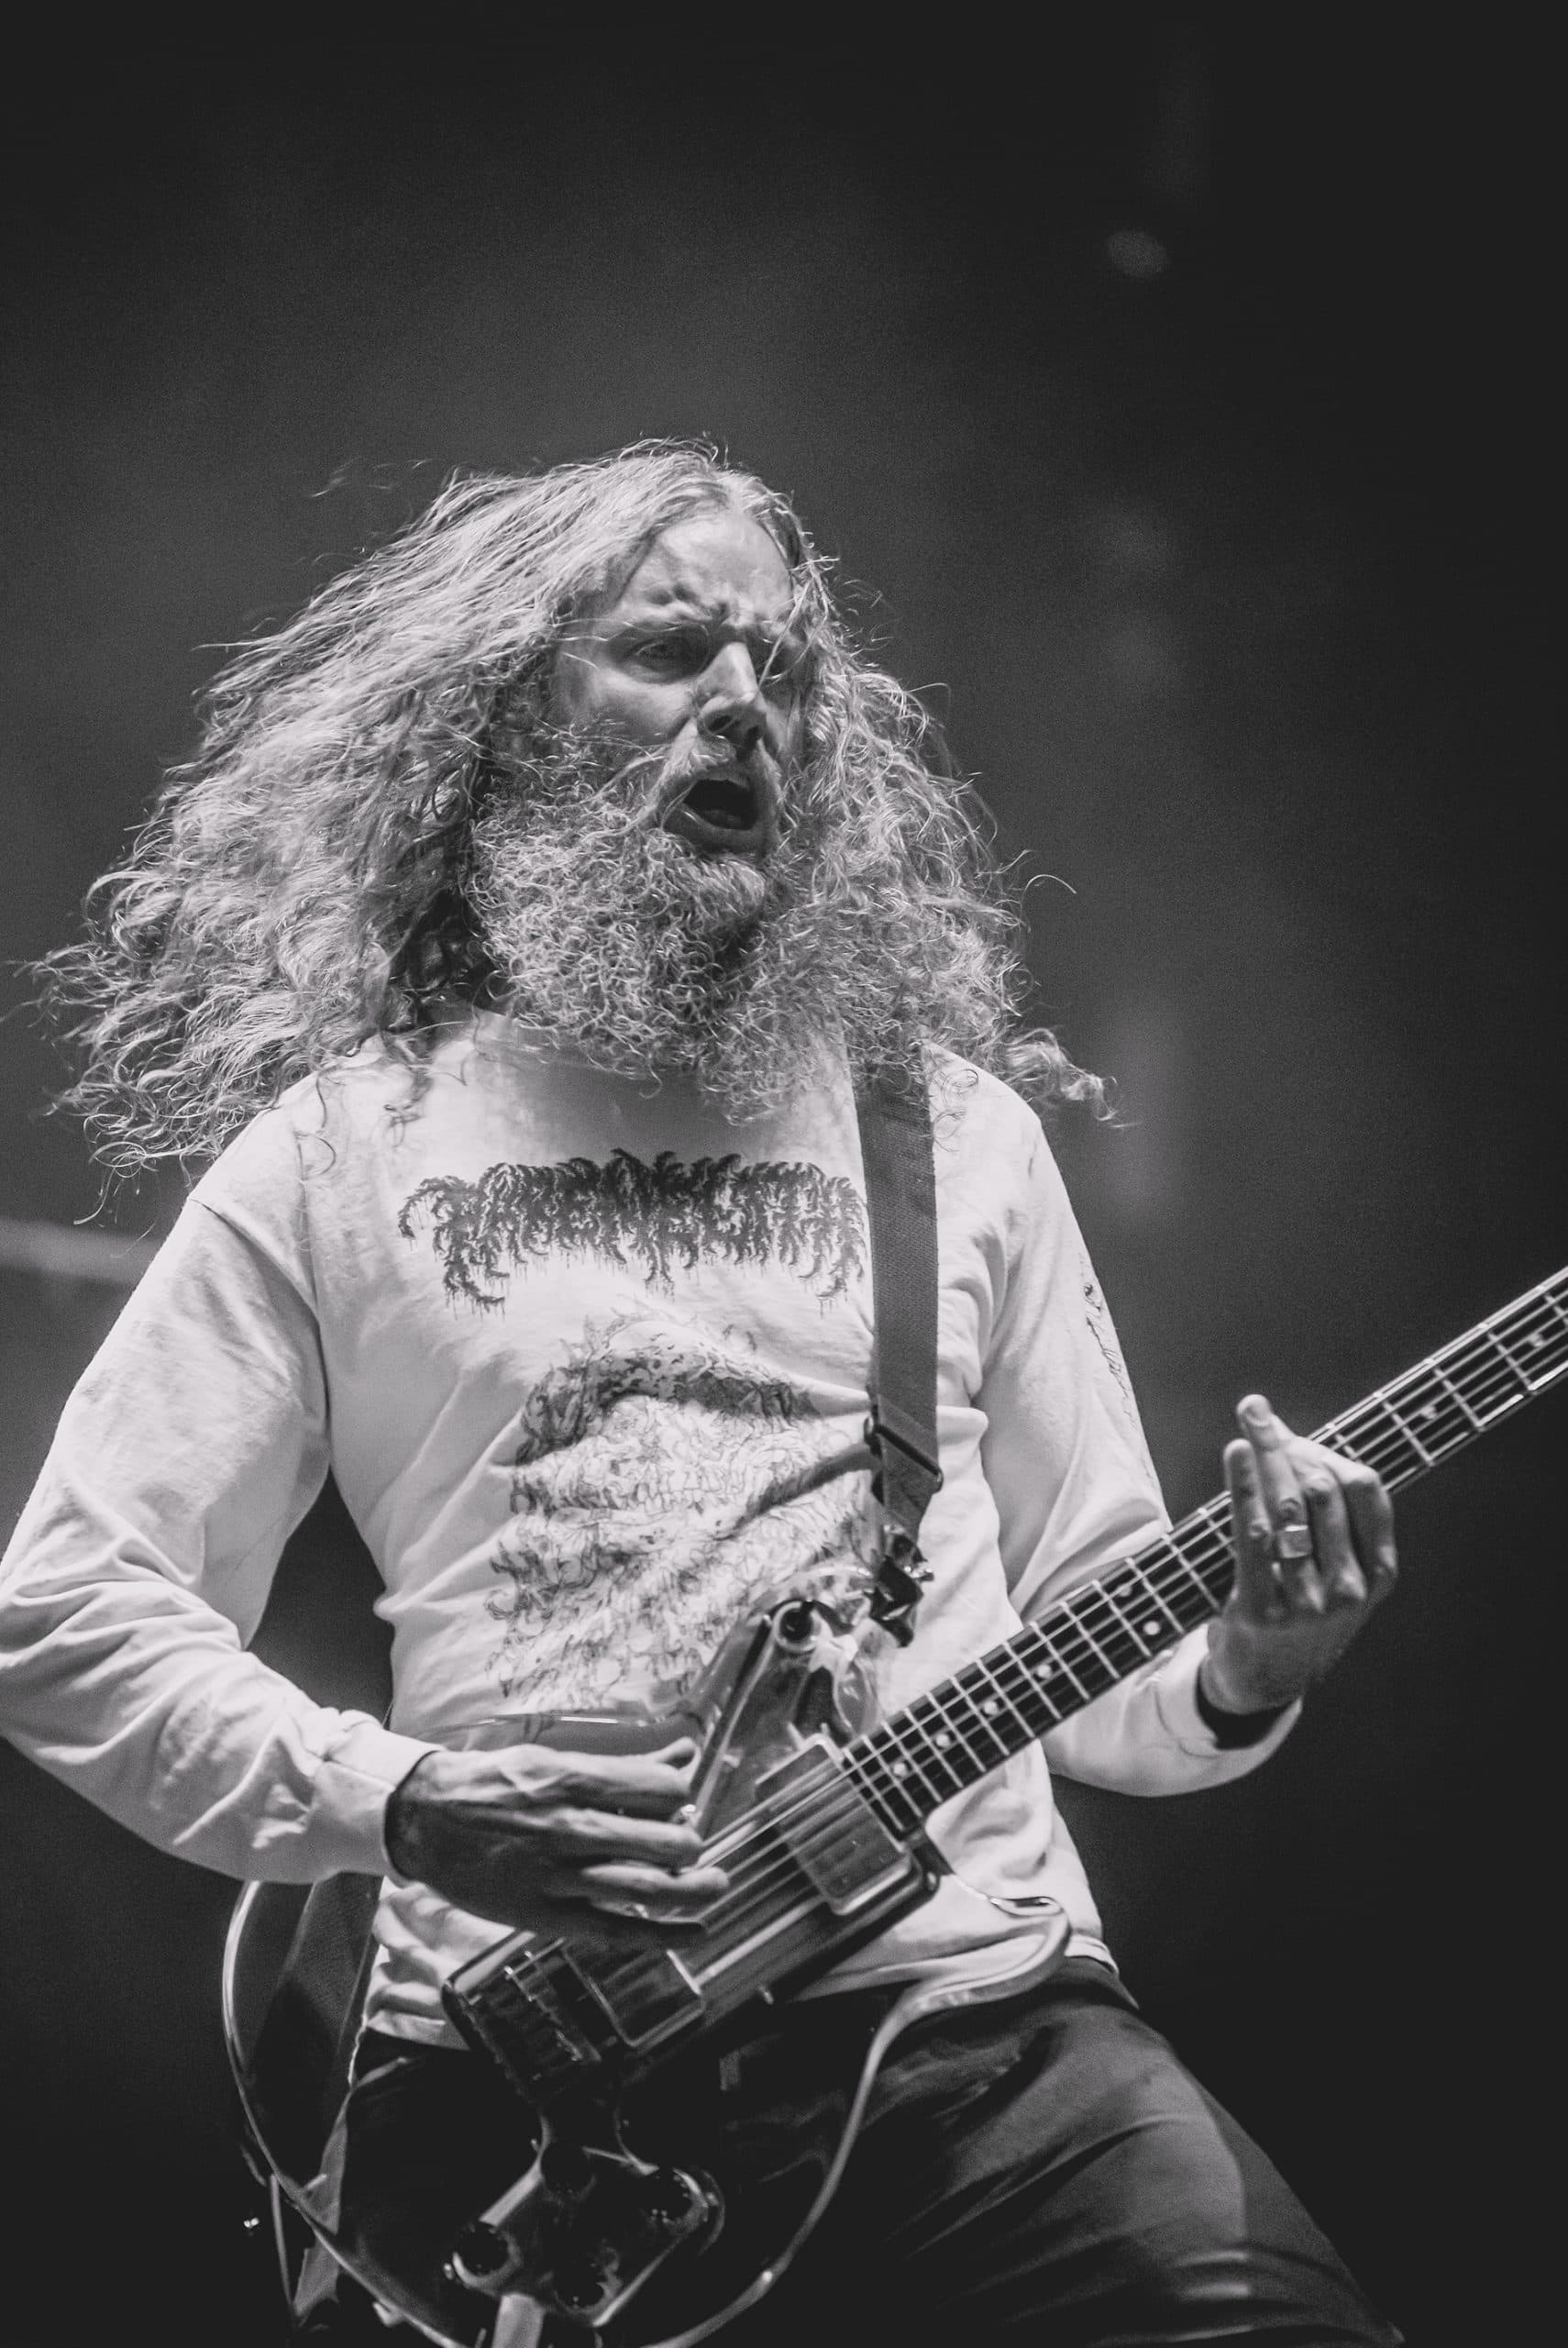 Black and white photo of guitarist from metal band Old Man Gloom during a concert in Las Vegas, Nevada